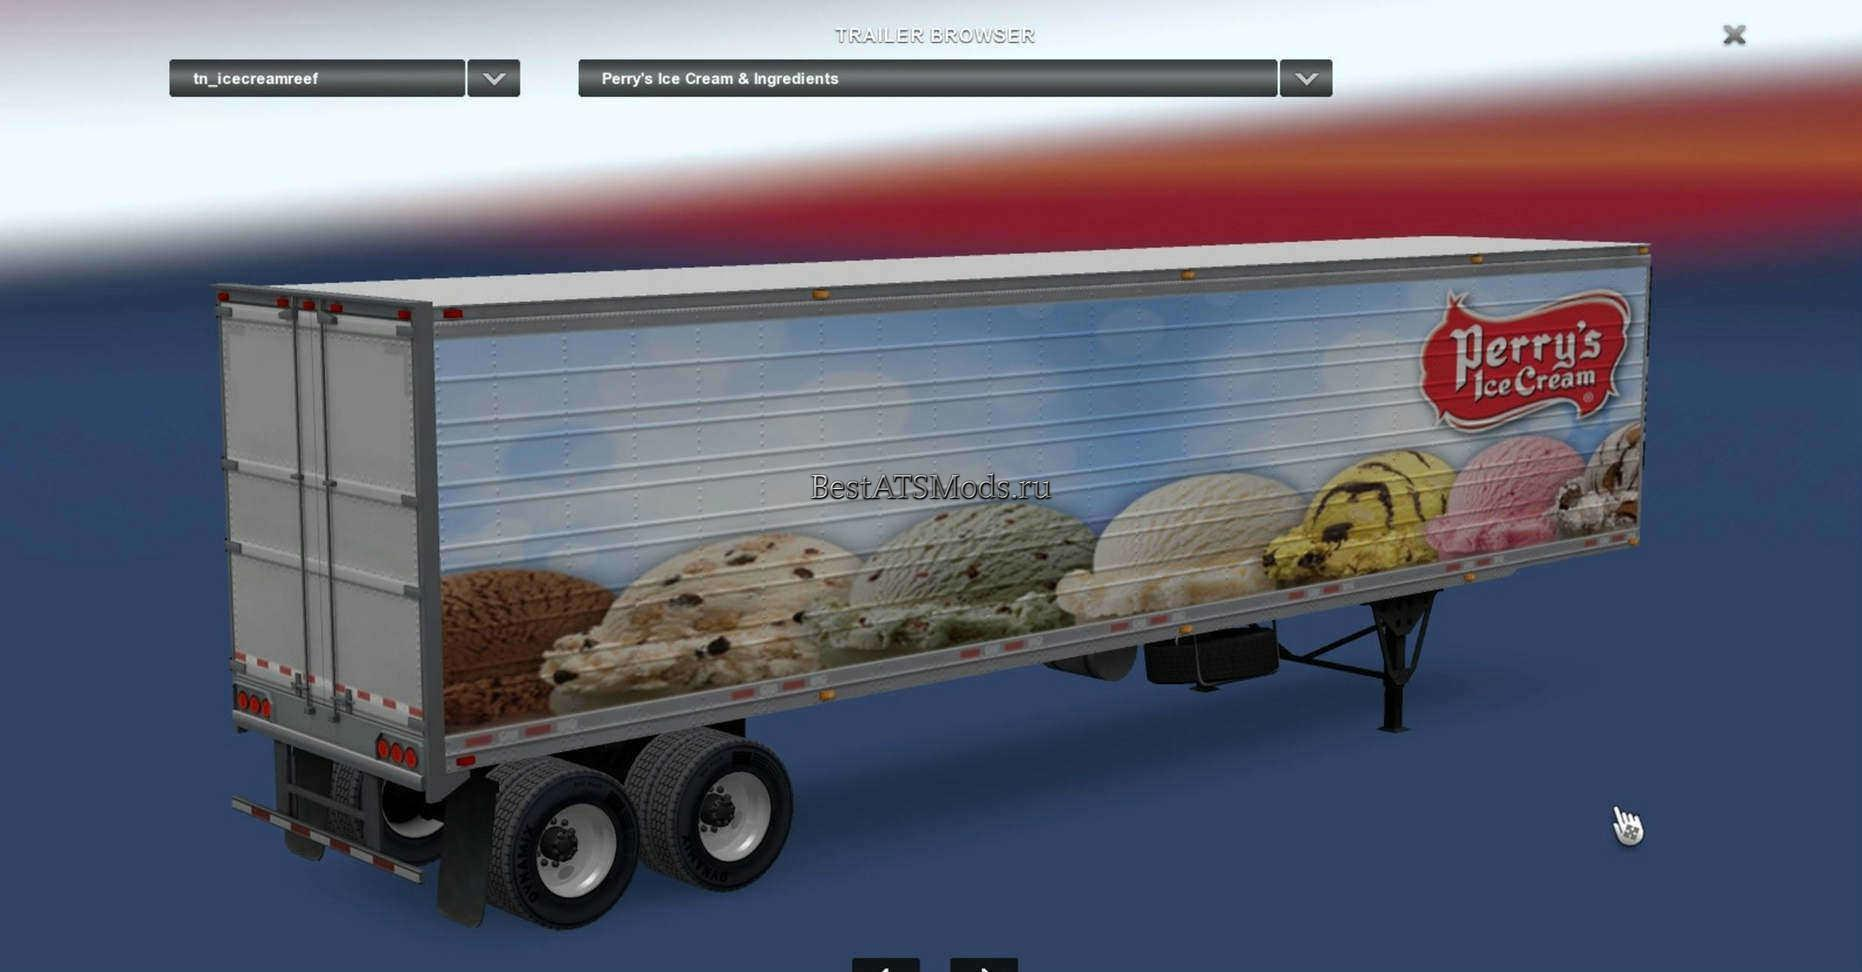 rsz_Мод_прицеп_perry's_ice_cream_trailer_for_american_truck_simulator